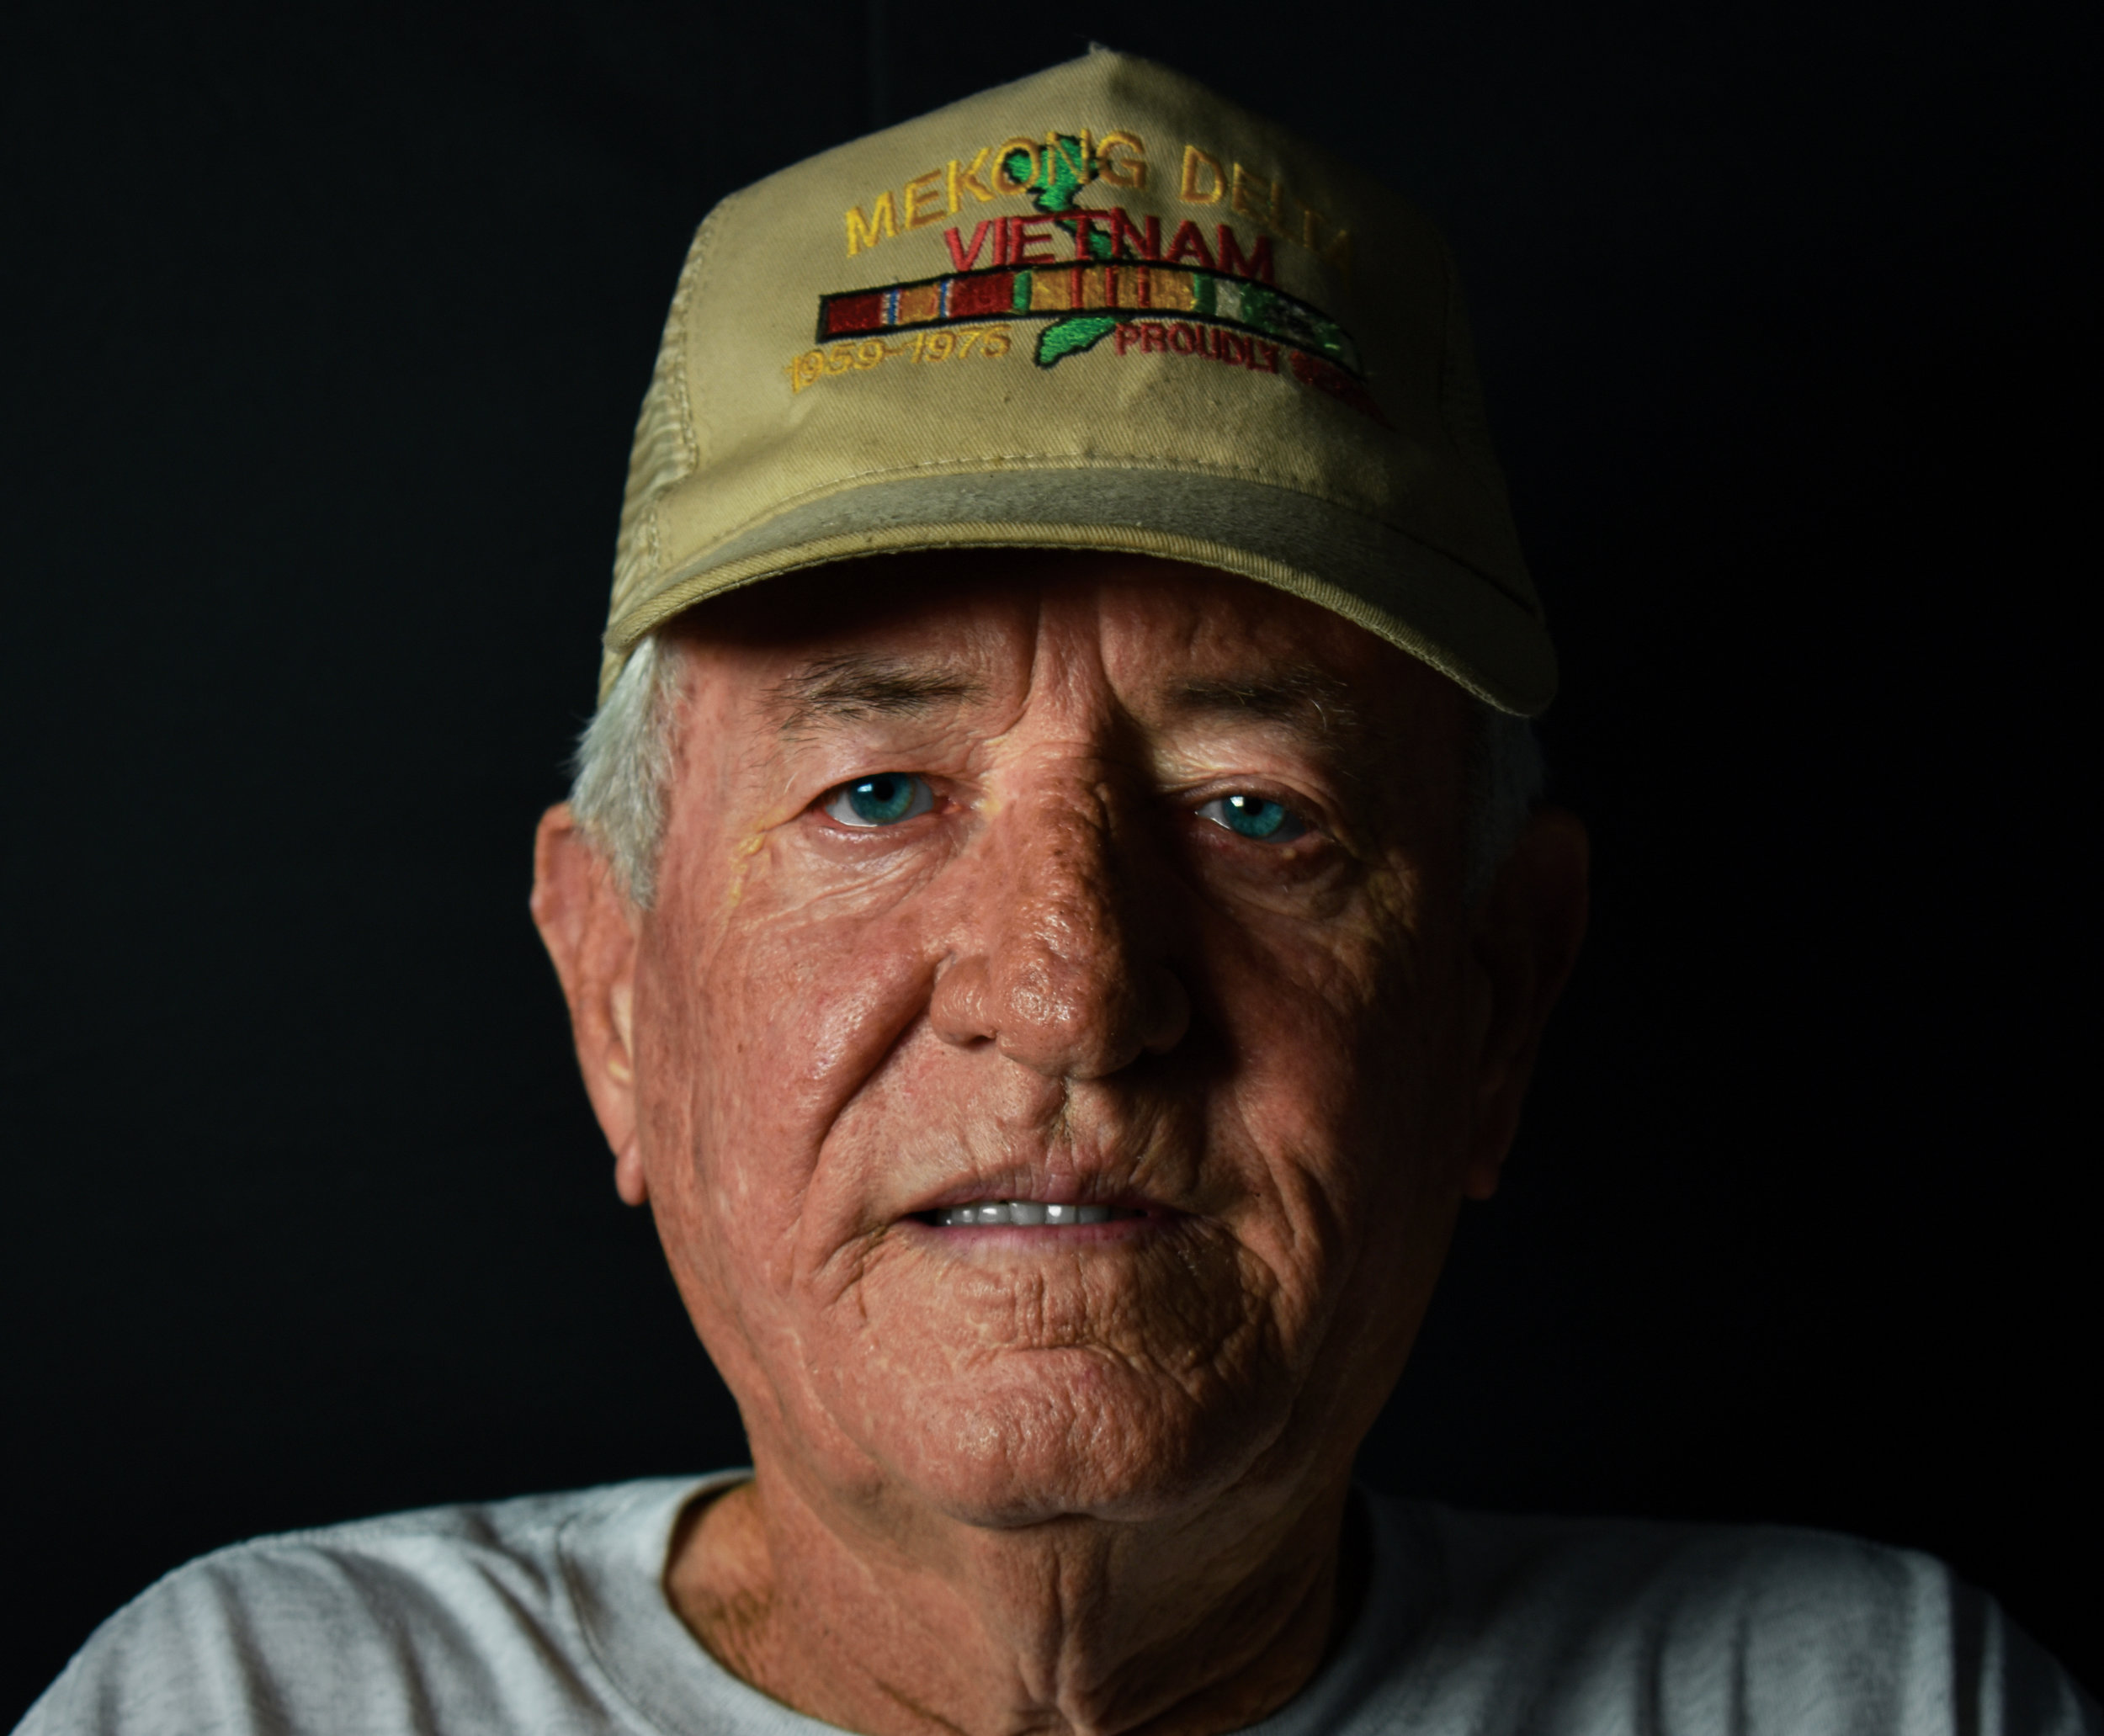 Mr. Ricky McDivitt's older brother joined the army and was killed in Korea at the young age of 20 years old.